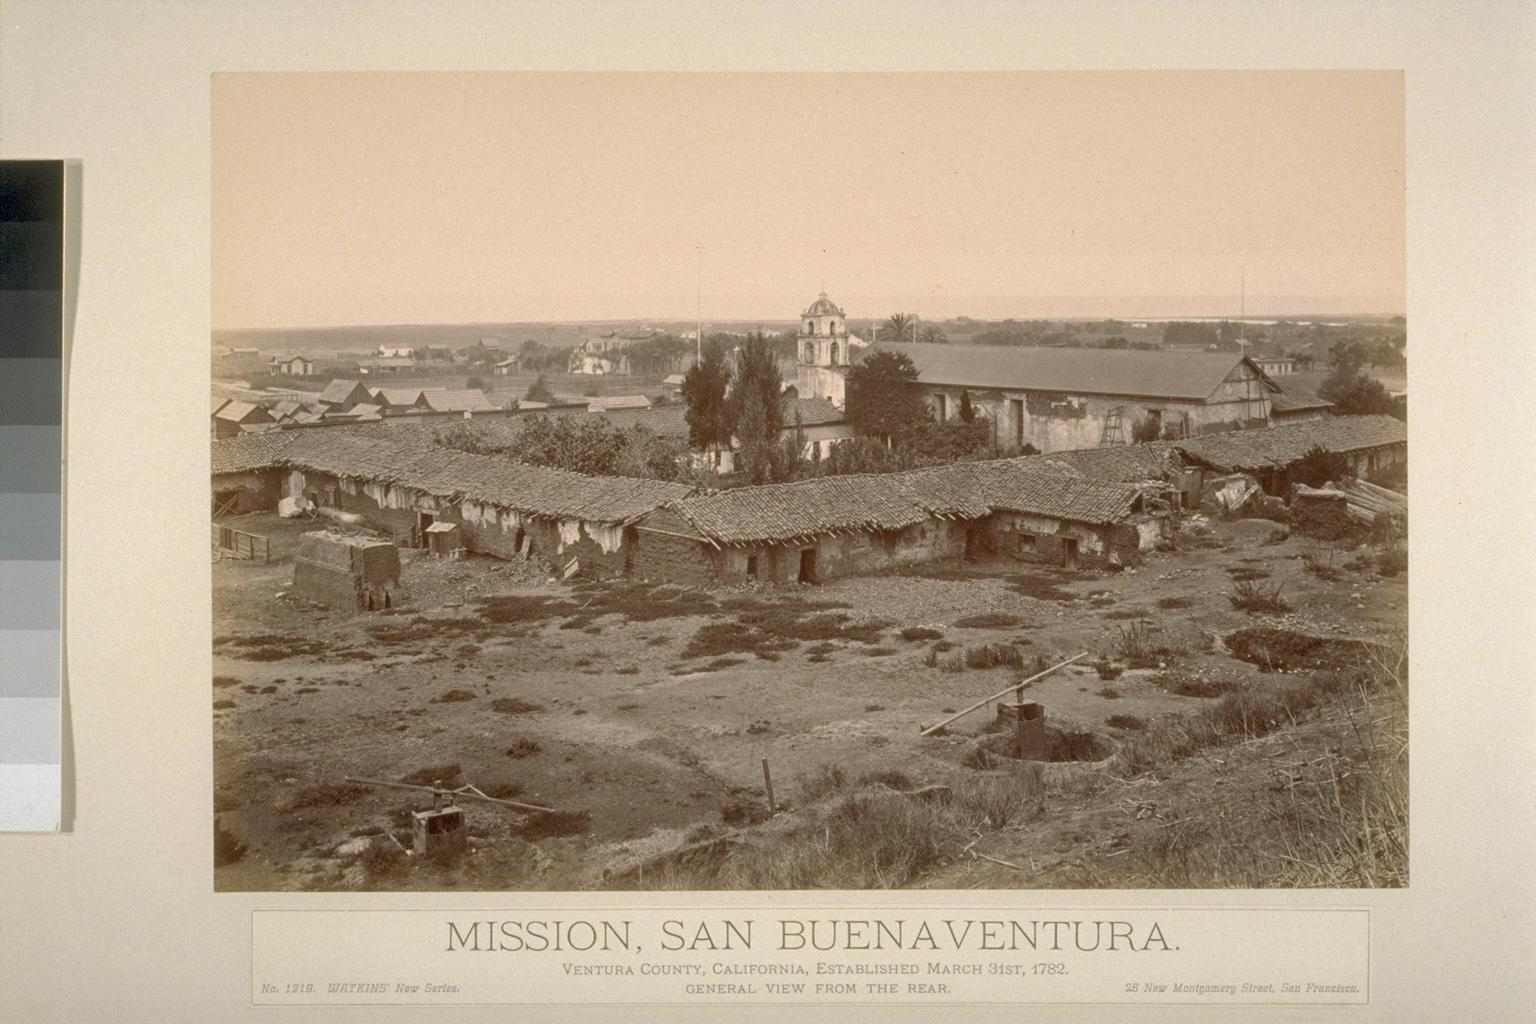 Mission San Buenaventura (rear view) by Carleton Watkins.